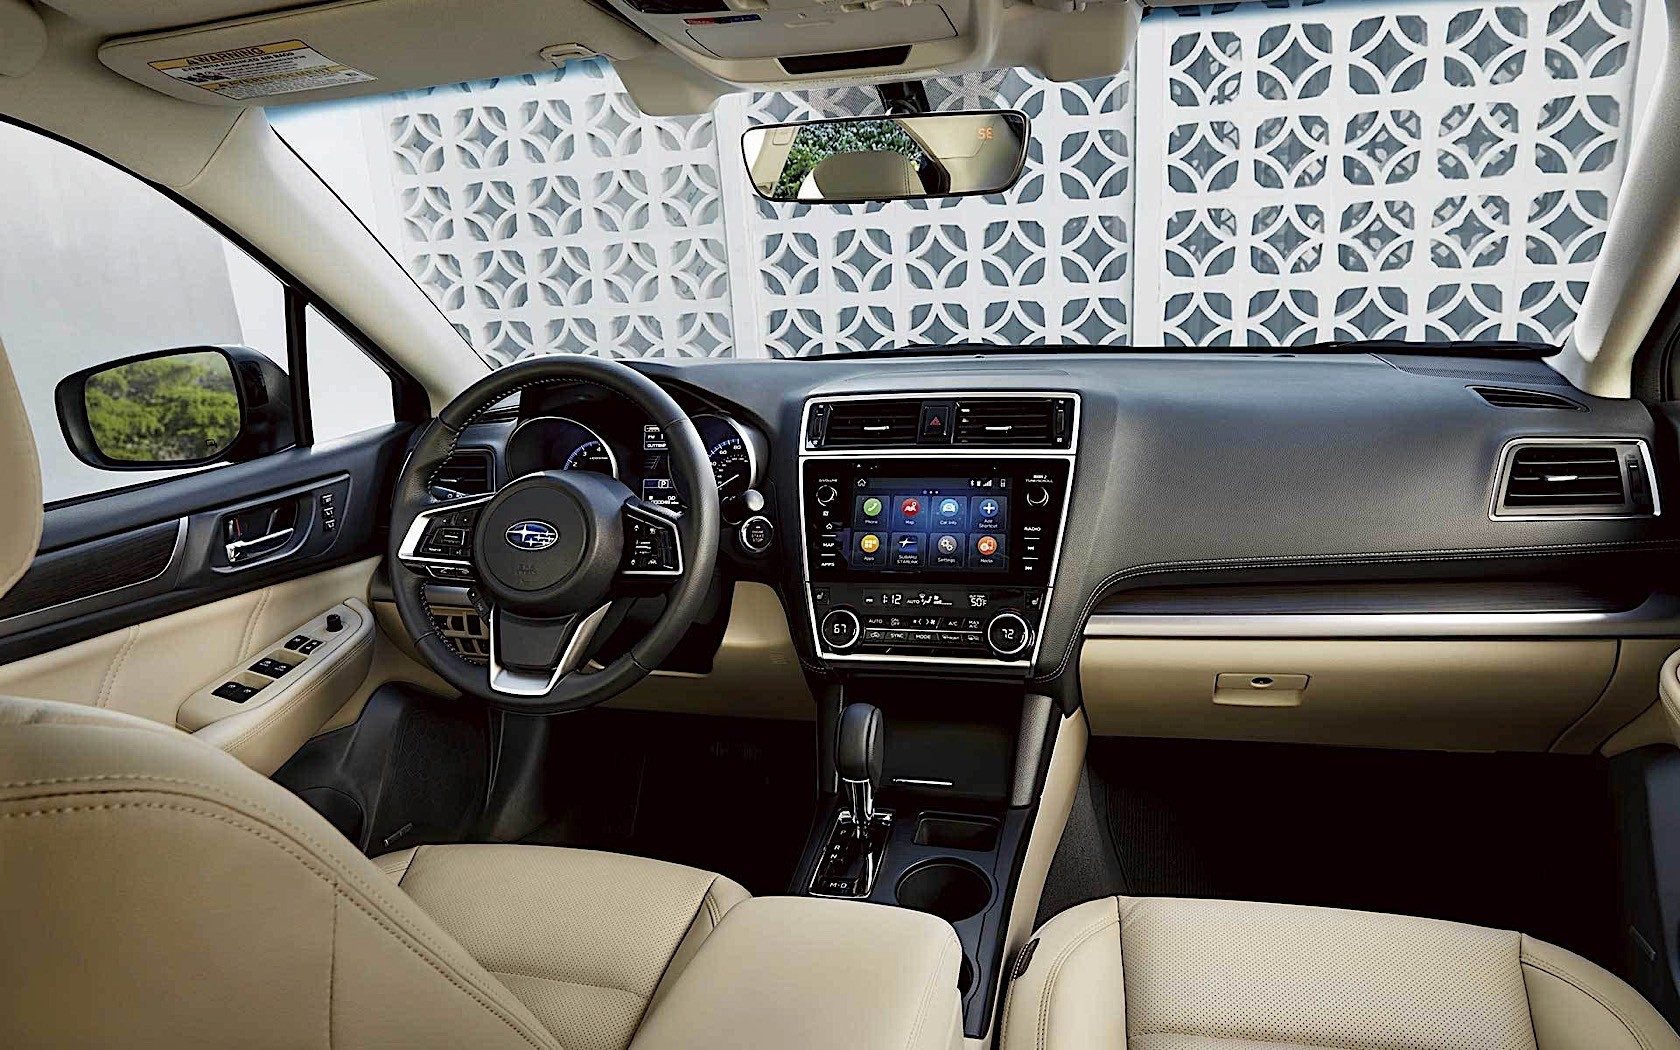 2020 Subaru Legacy Interior Photo Shows Significantly ...